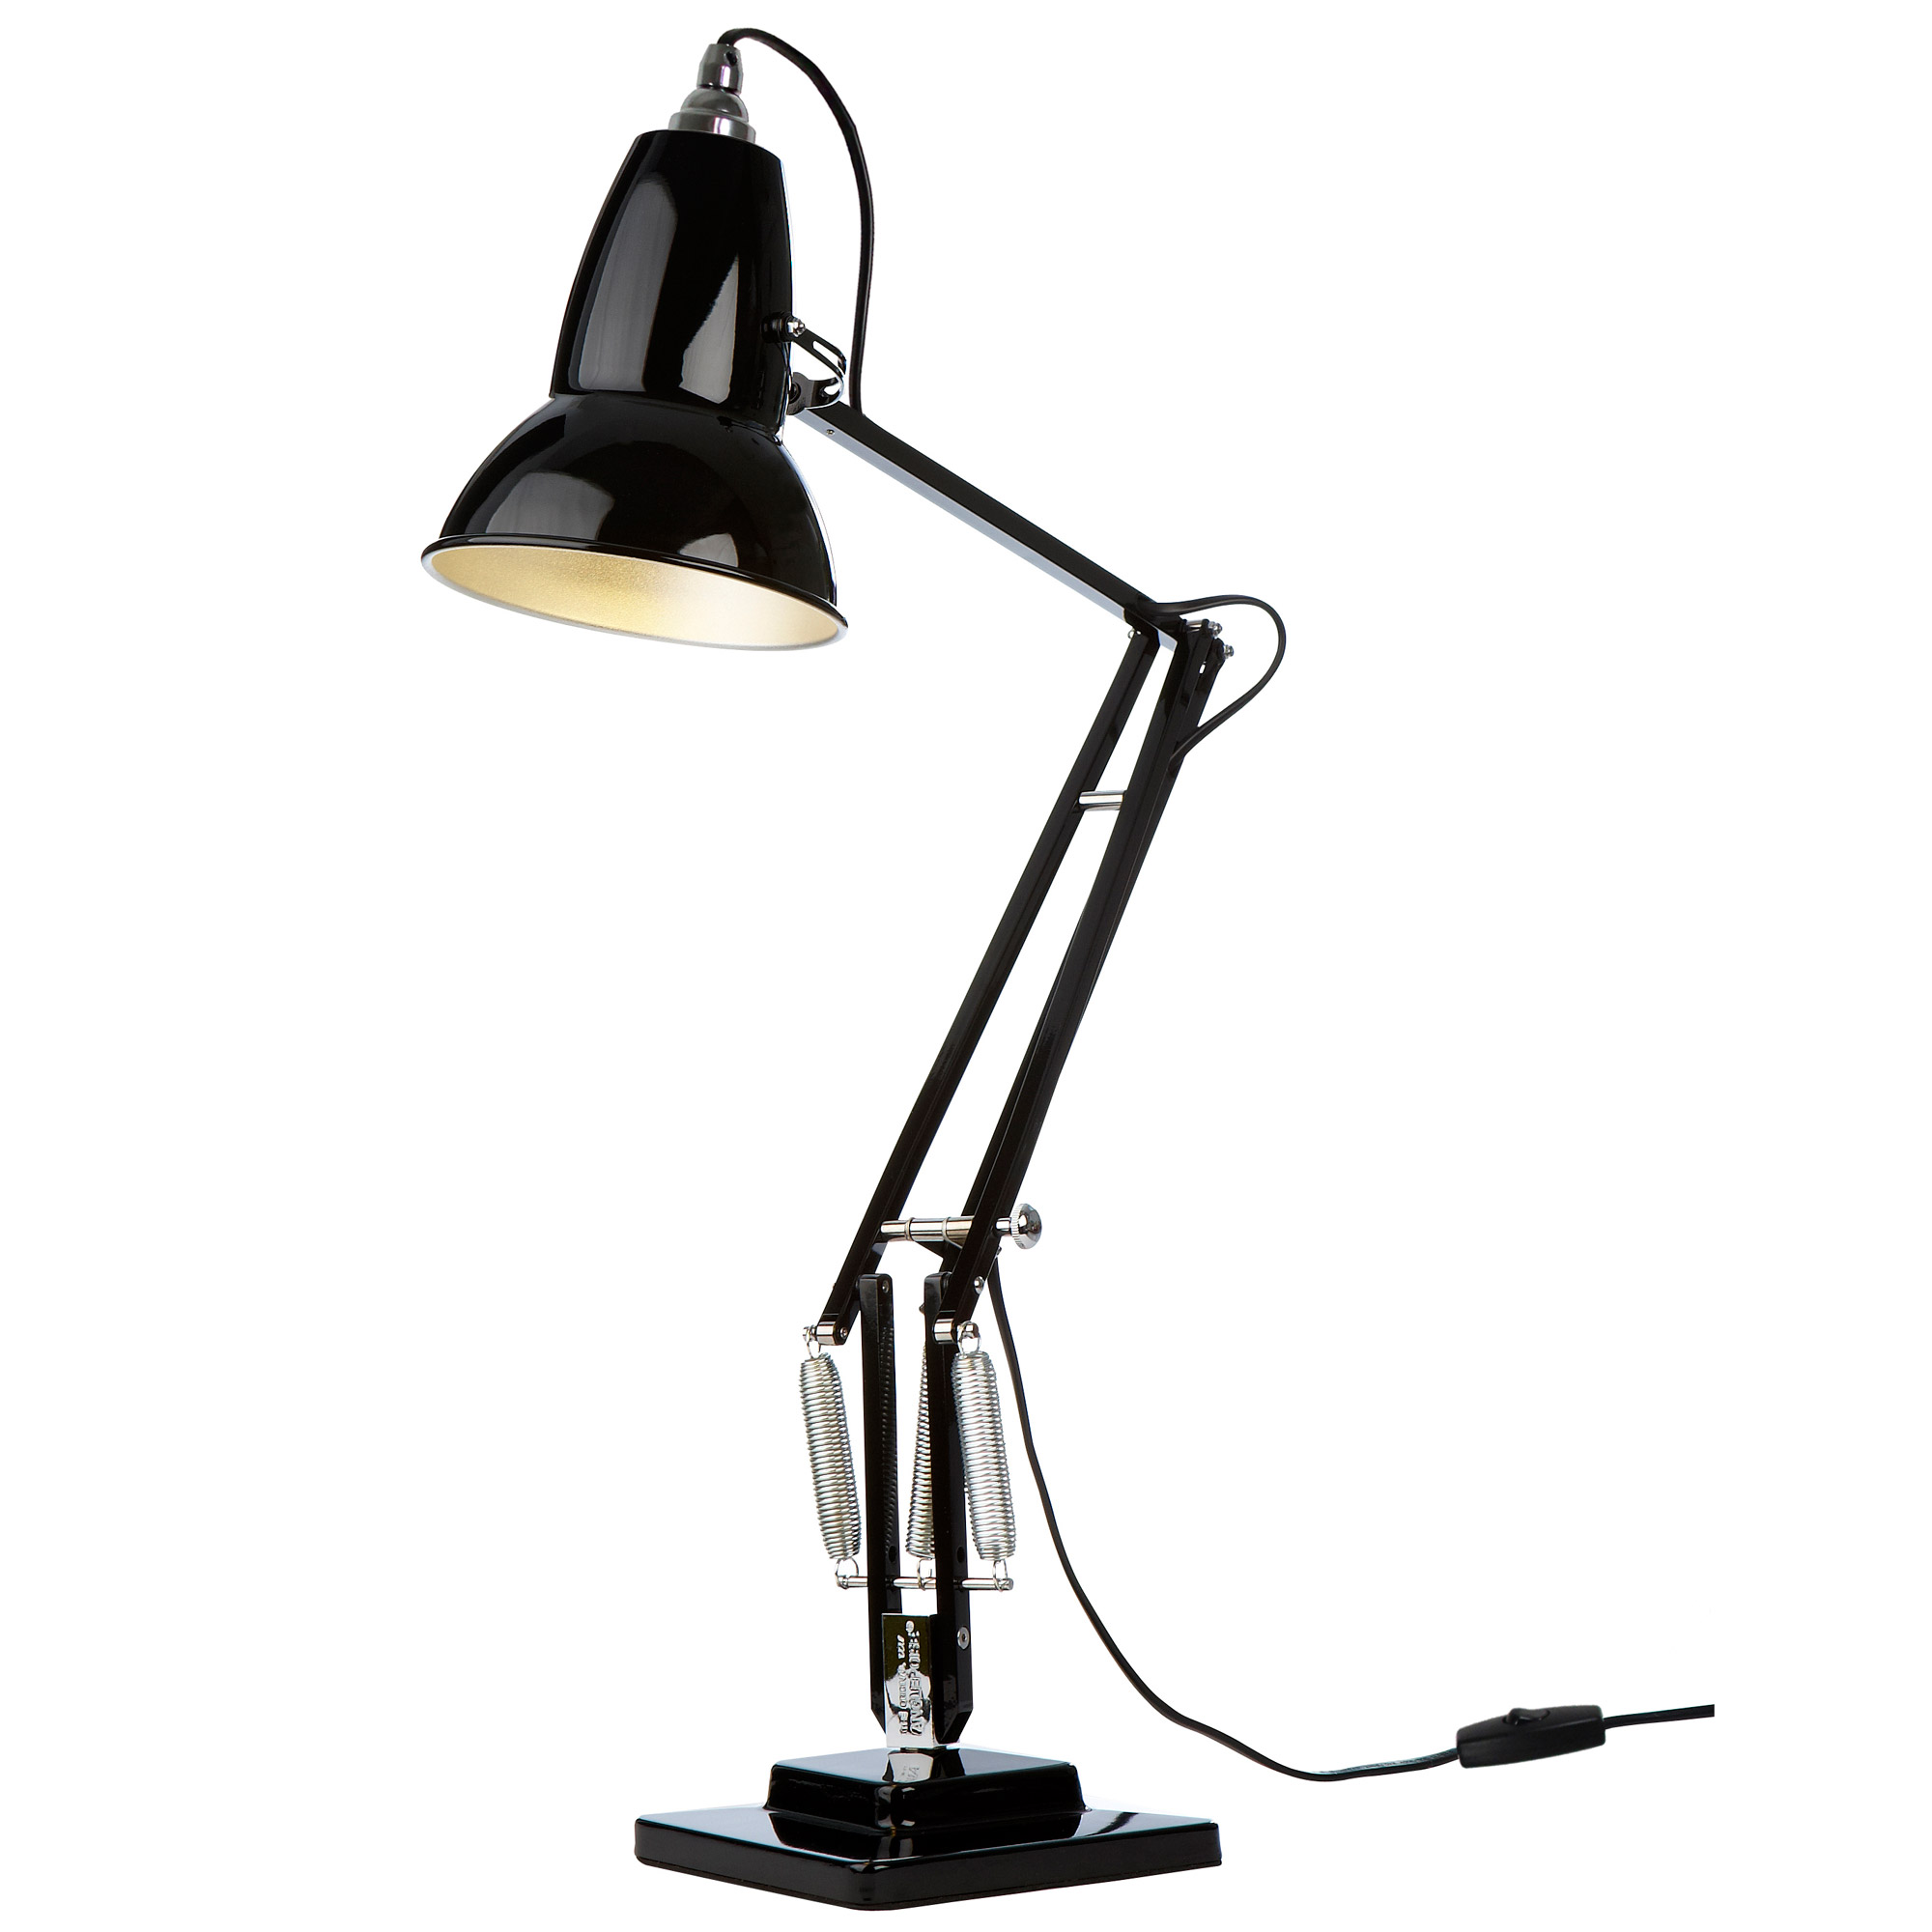 lamps desk ebay old vandijkmc lamp giant uk anglepoise floor